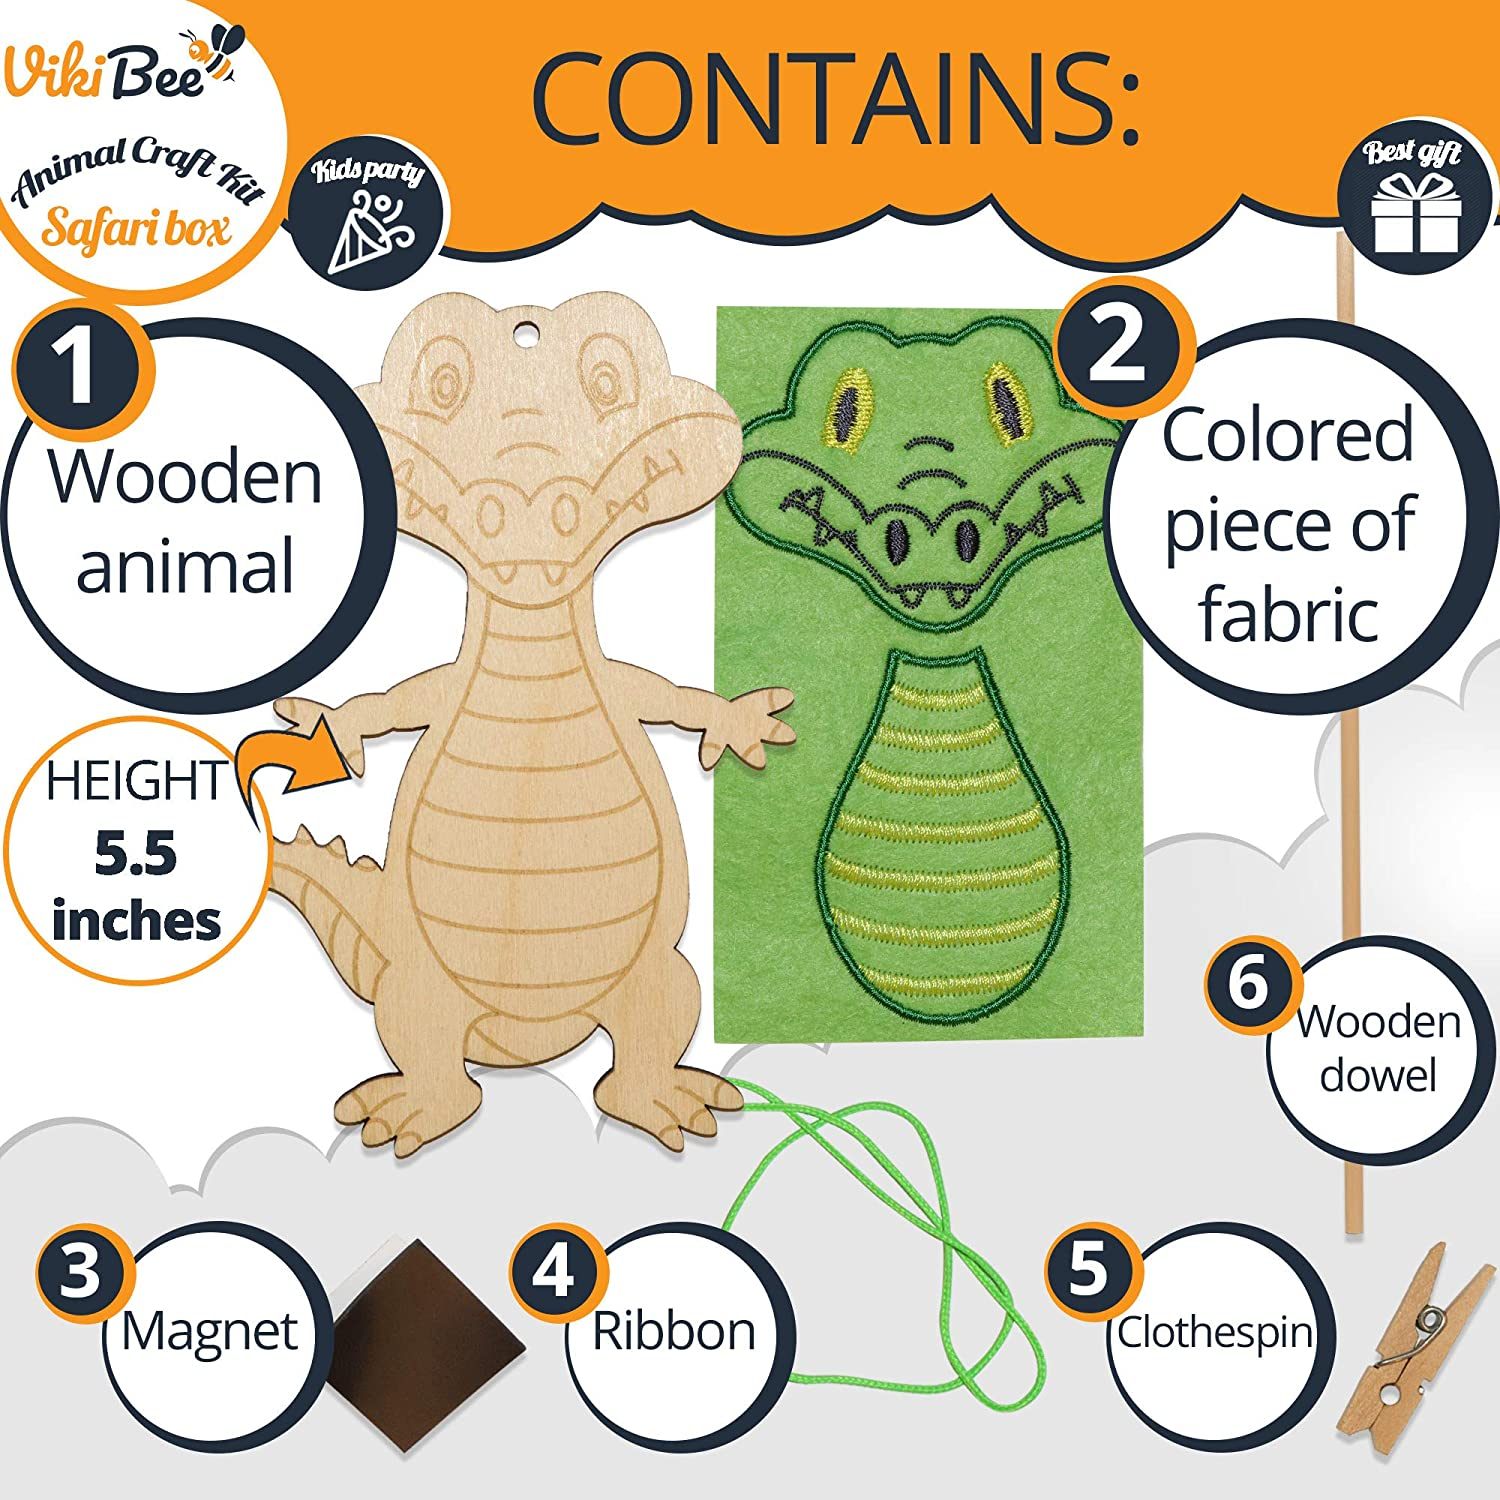 Decorate Your Own Animals Painting Craft Wooden Craft to Paint Zoo Animals Cutout Educational Toy Unique Gift VikiBee Safari Animals Wooden Crafts Monkey Monkey Learning Toy Kids Craft